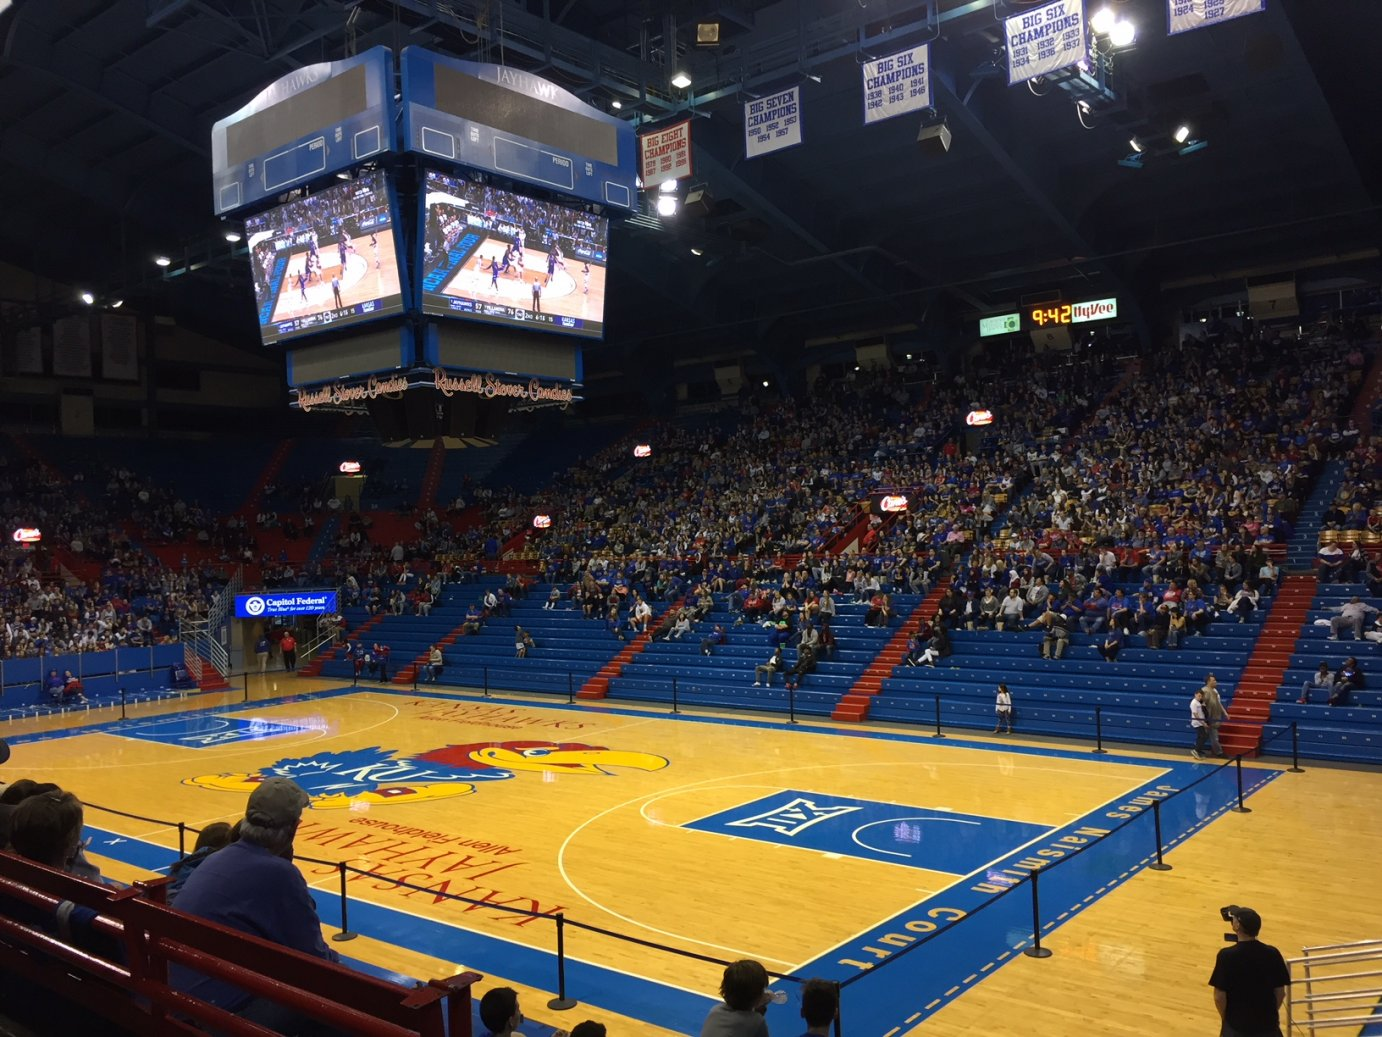 Fans in Allen Fieldhouse for the KU game. (Photo by Stephen Koranda)